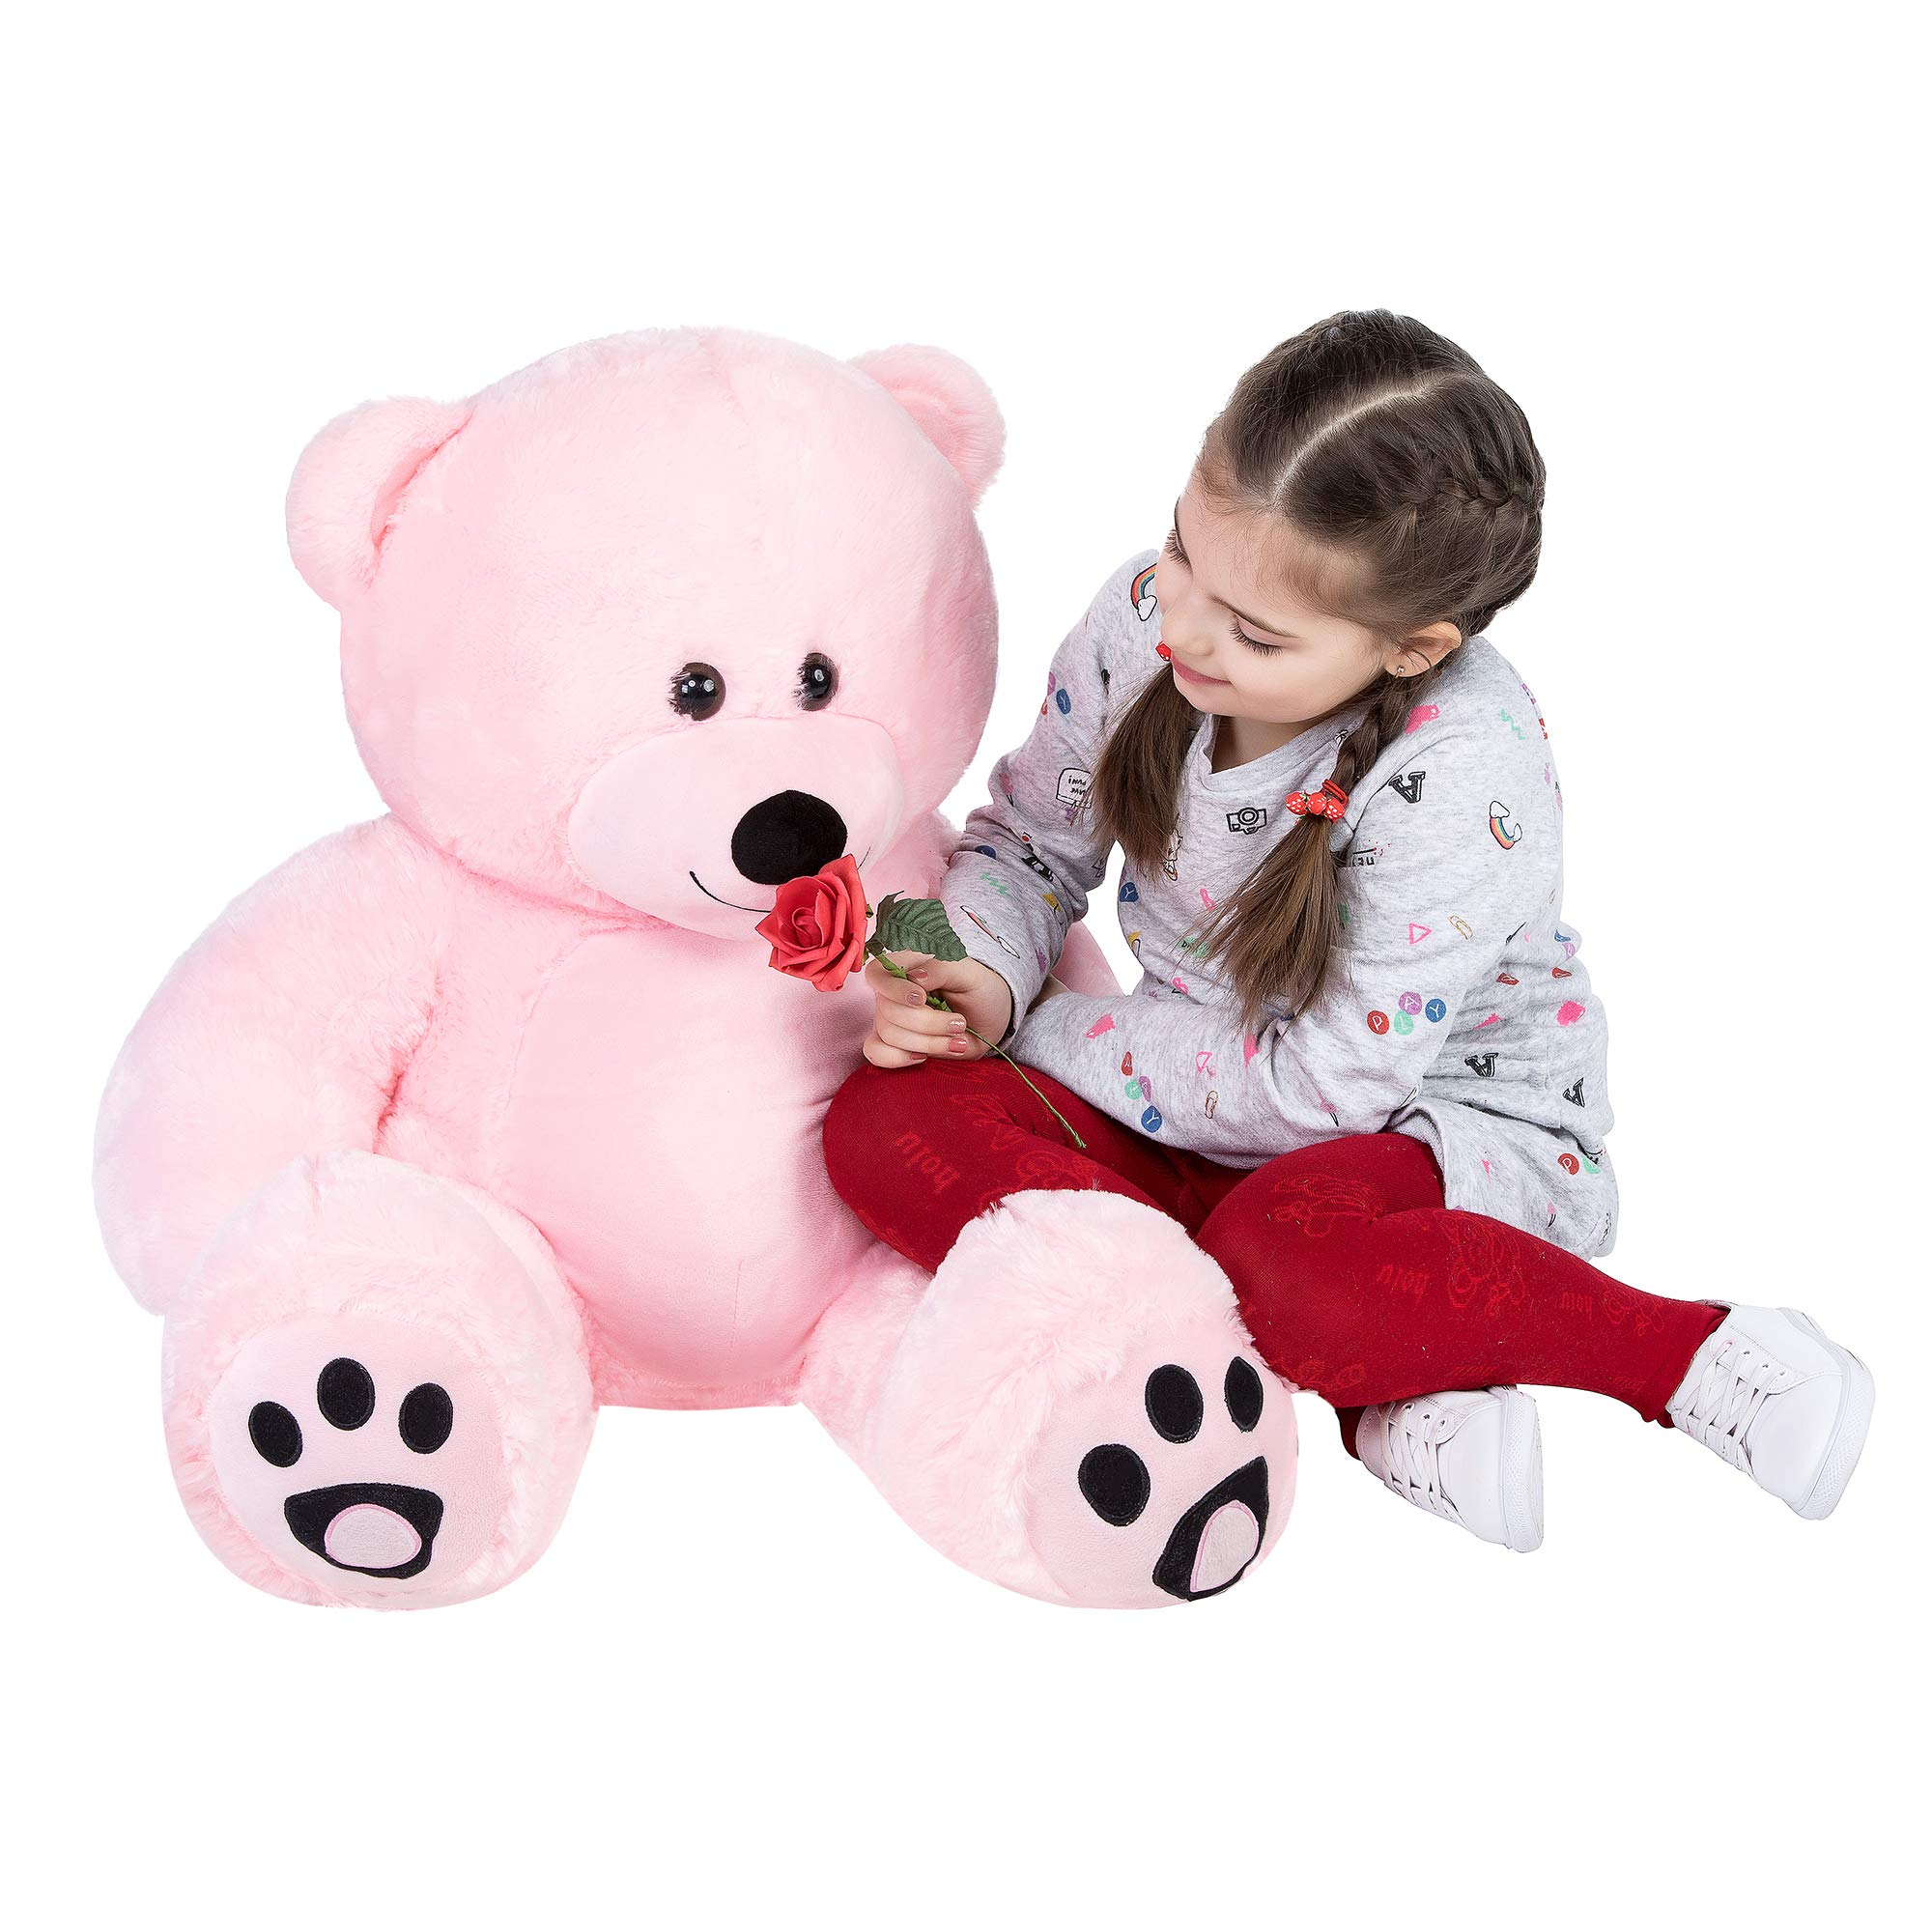 VERCART Giant Huge 3 Foot Teddy Bear Cuddly Stuffed Animals Plush Teddy Bear Toy Doll for Birthday Children's Day Valentine's Day Pink 36 Inches by VERCART